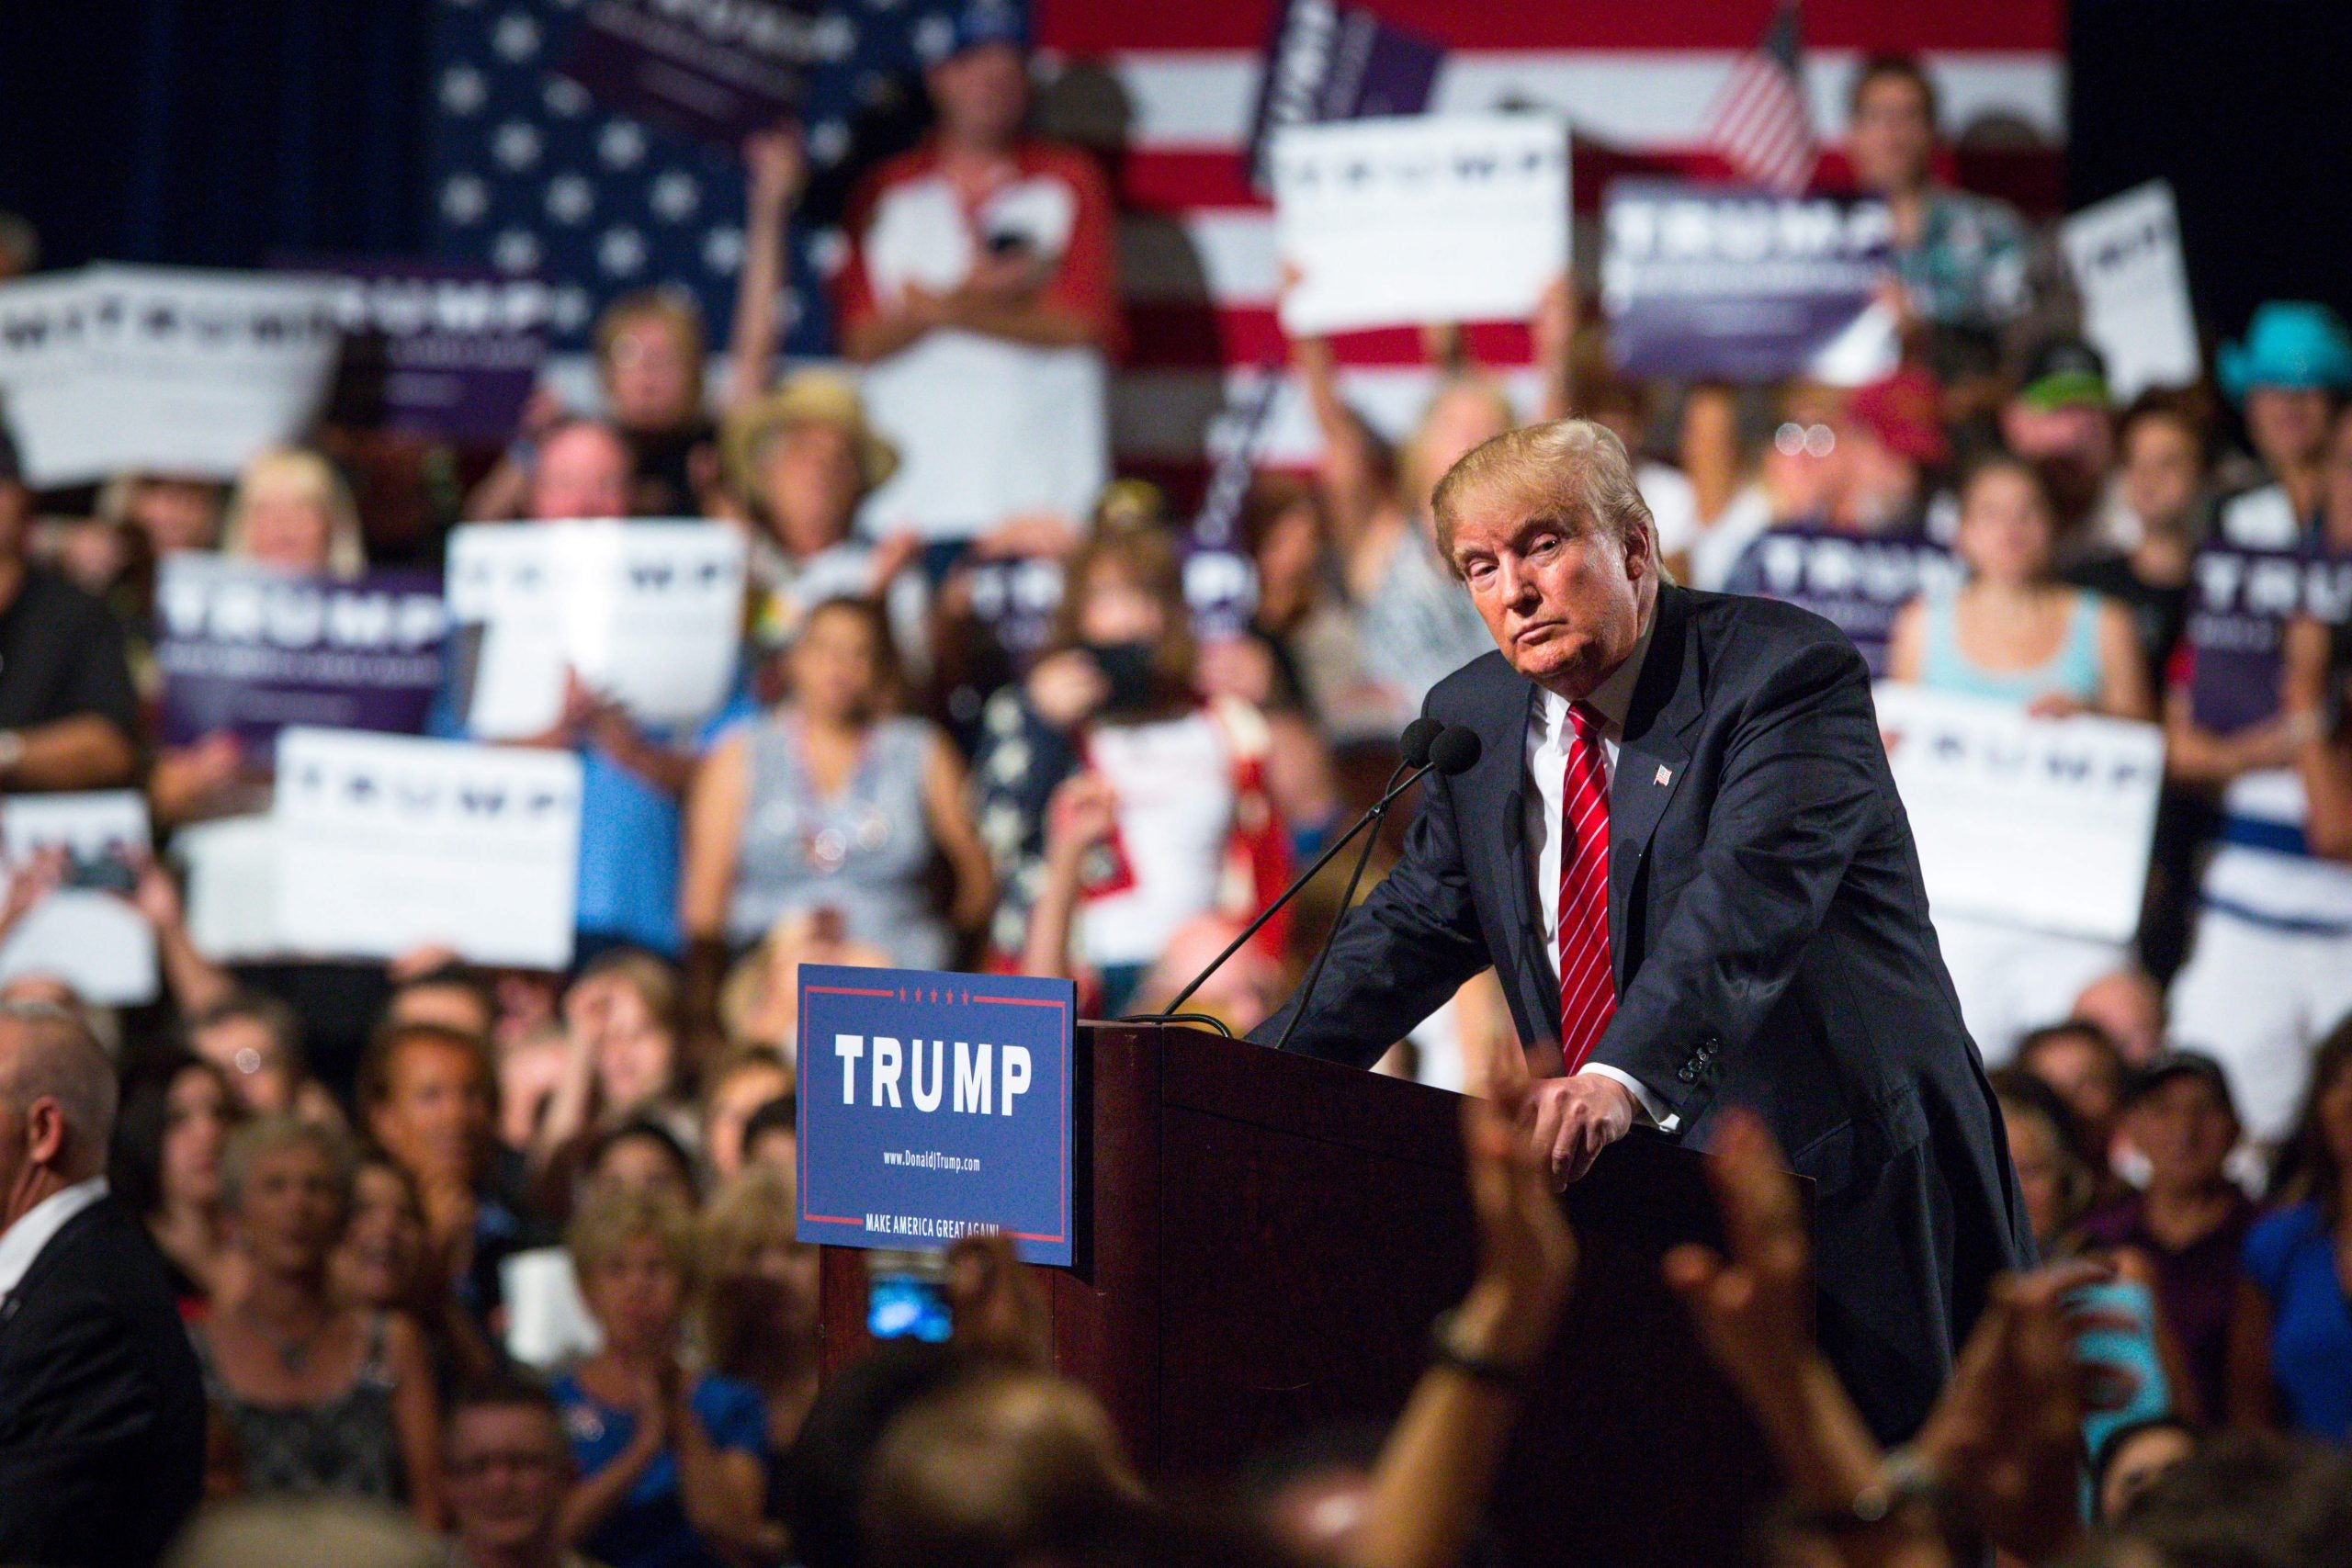 Following Donald Trump in New Hampshire